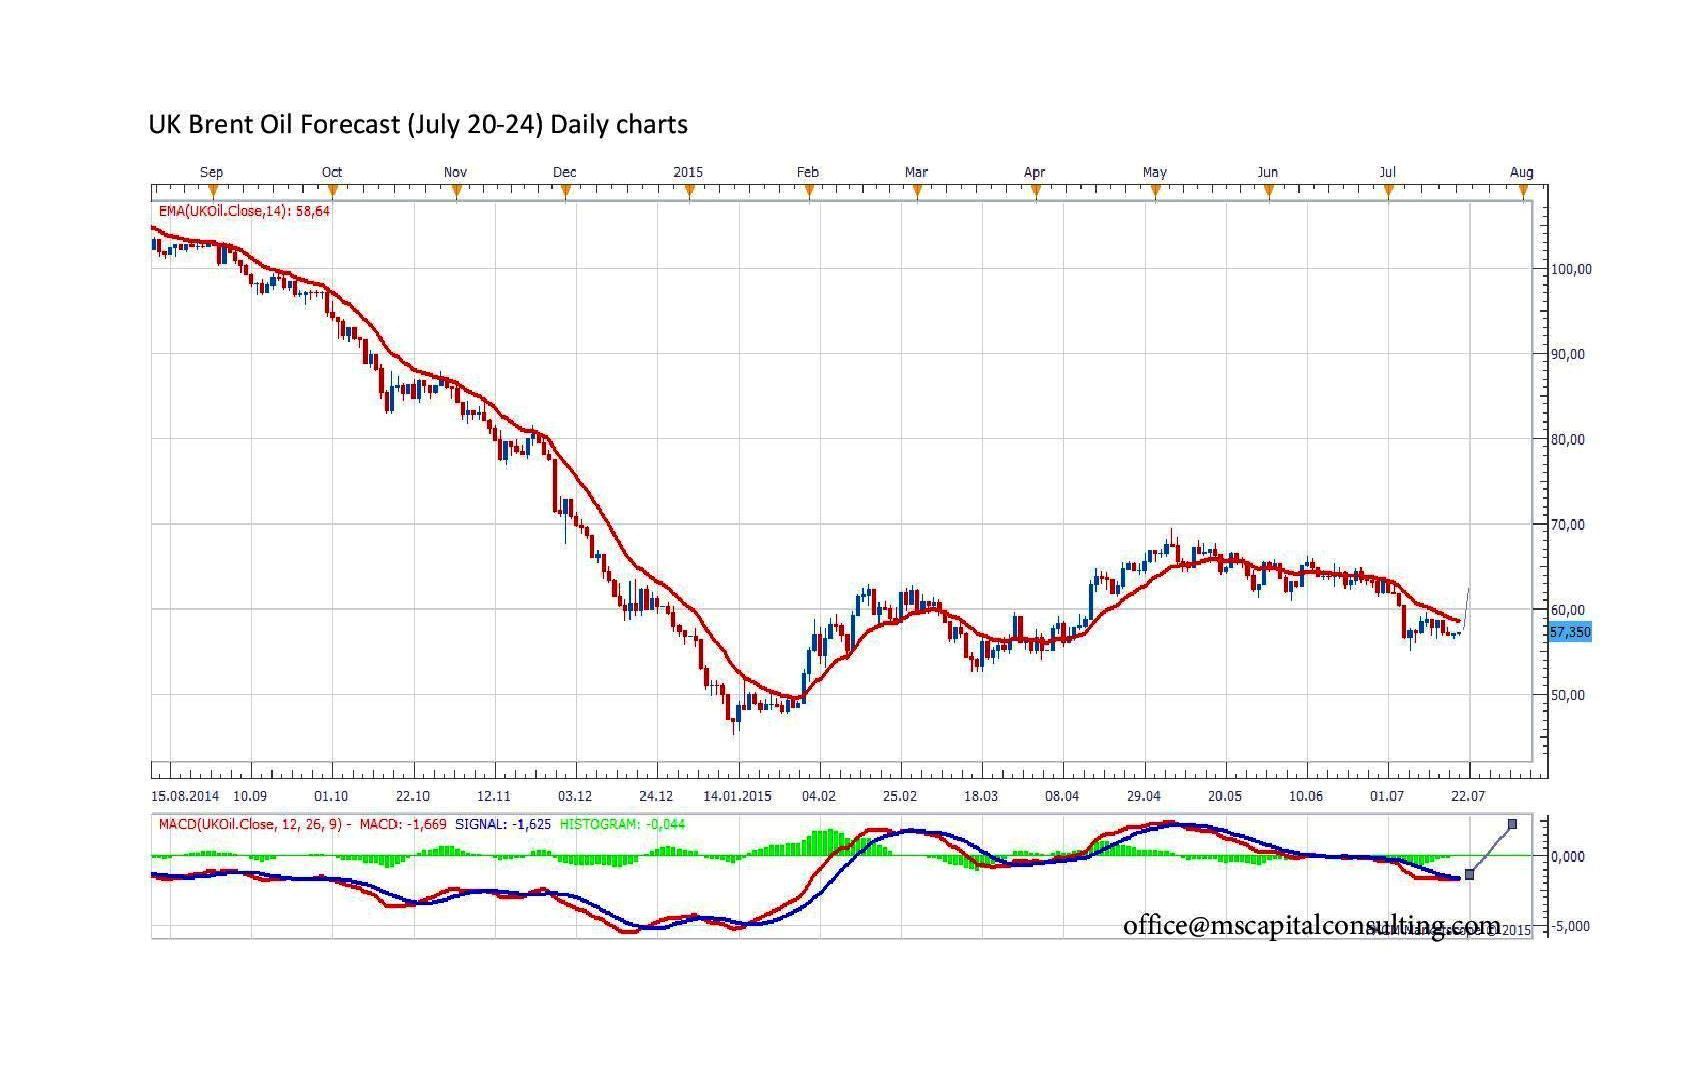 UK Brent Oil Forecast page 001